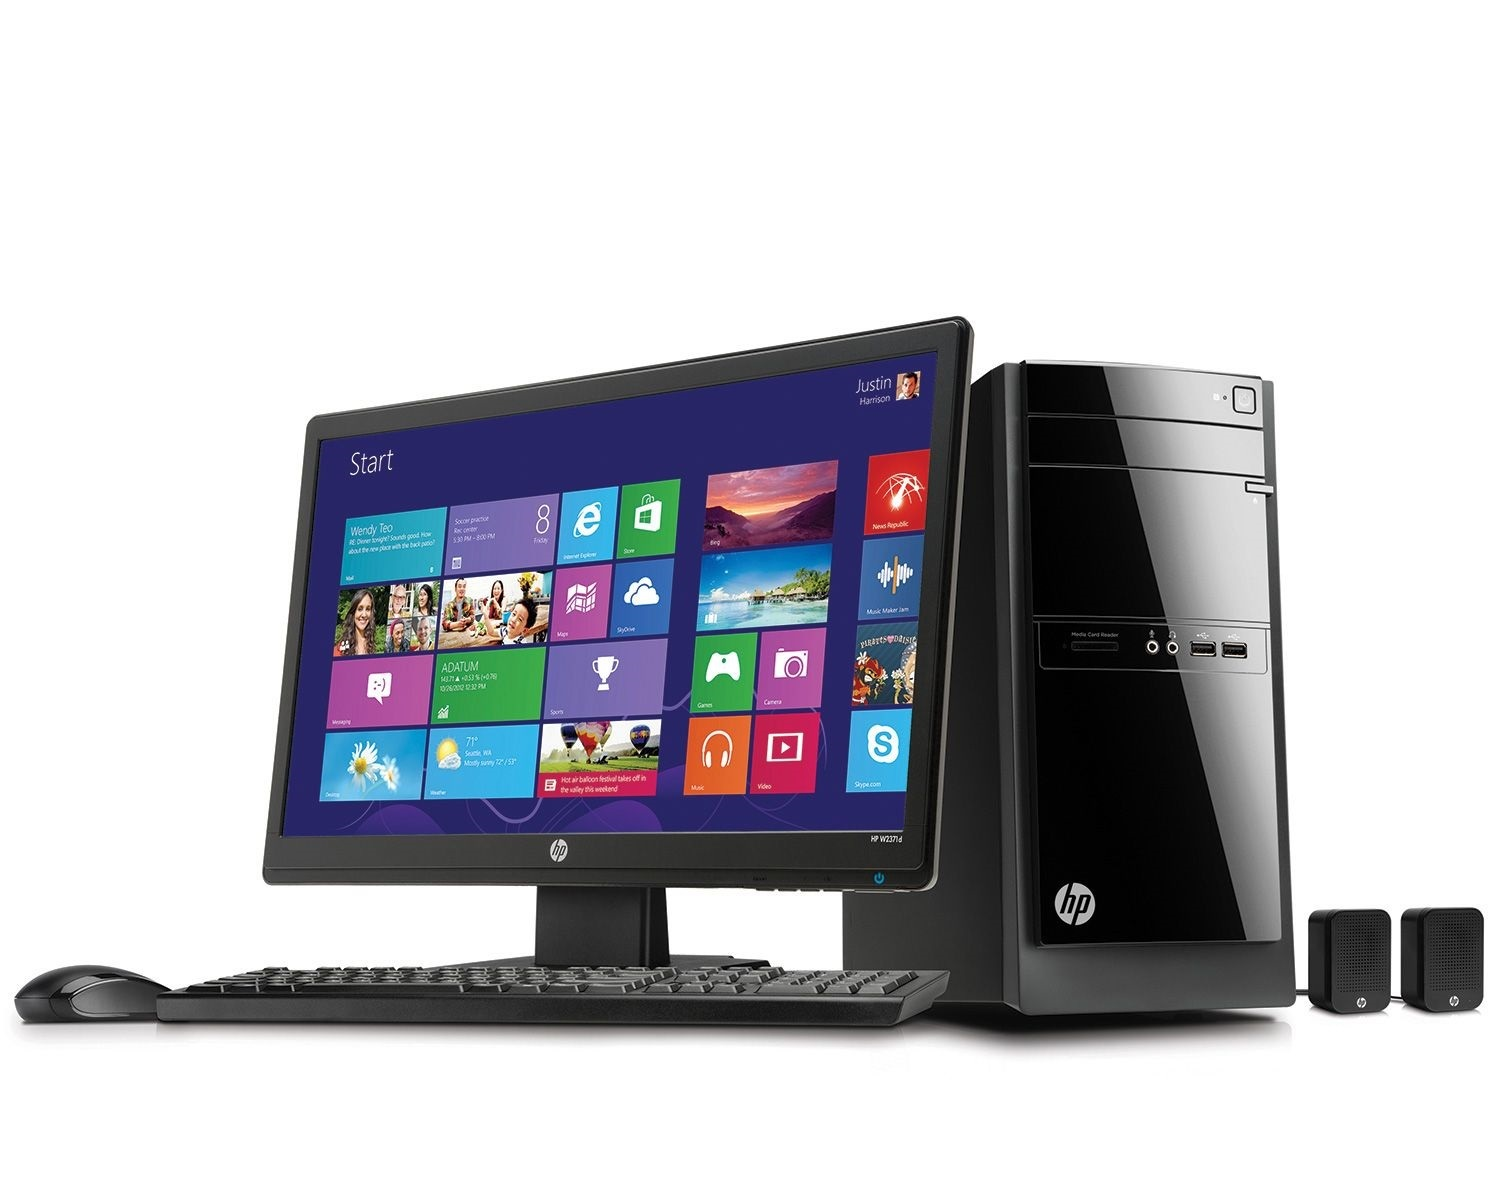 Shop Best Buy for a great selection of HP desktops, from basic towers to powerful PCs and sleek all-in-one computers.